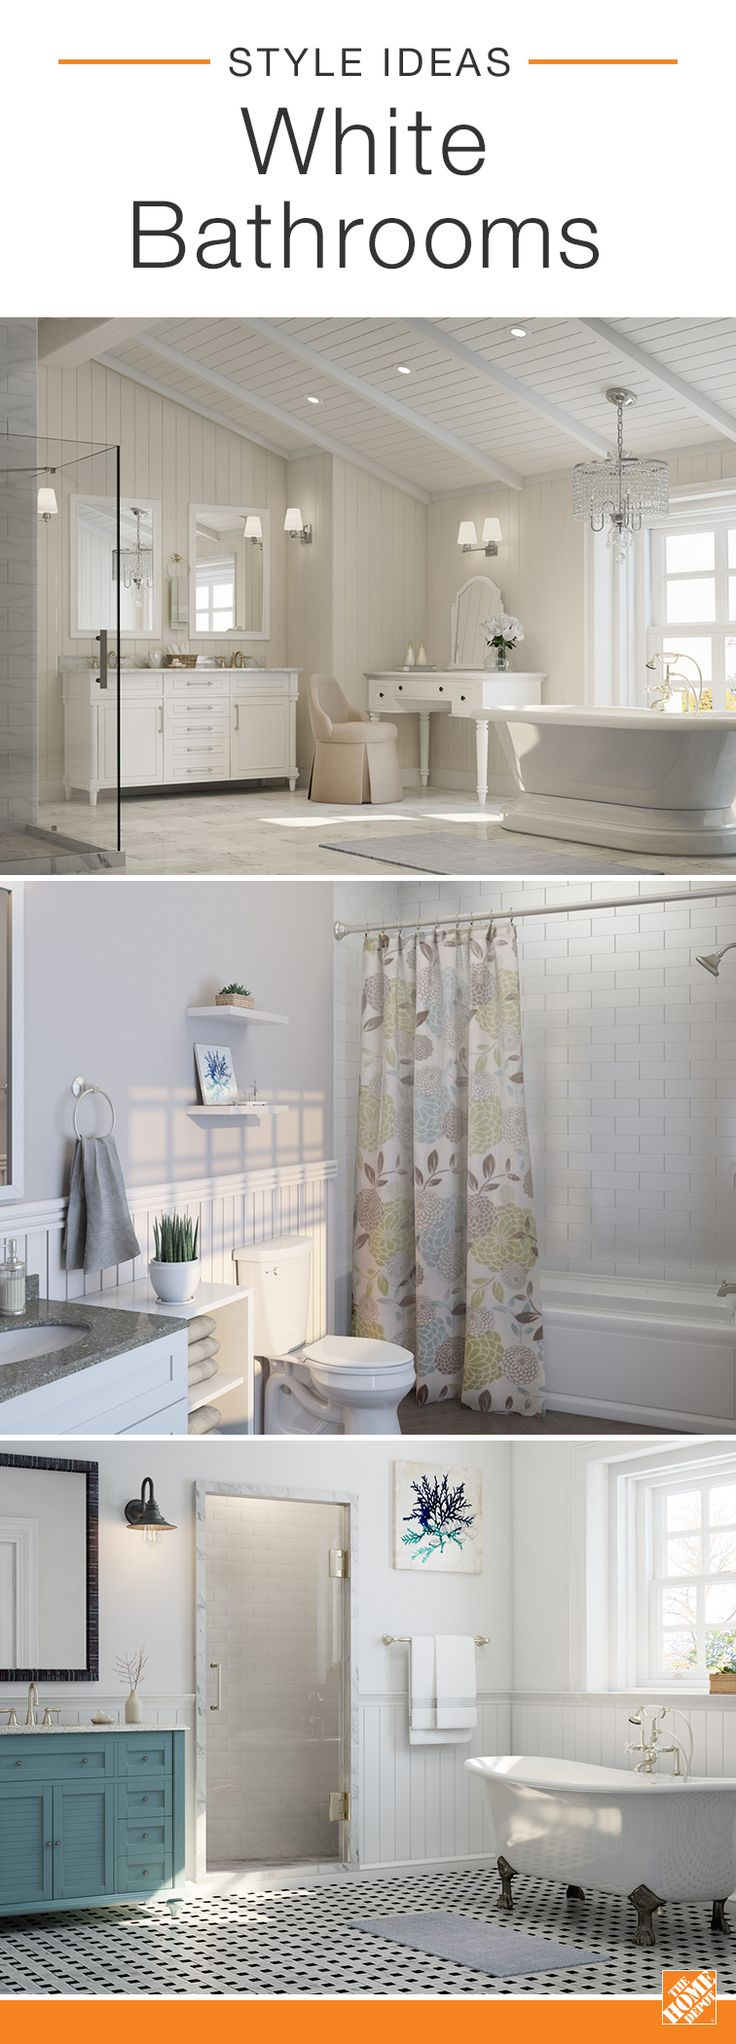 Bright White Bathrooms Are Classic Because The Clean Color Opens Up Small Spaces And Makes